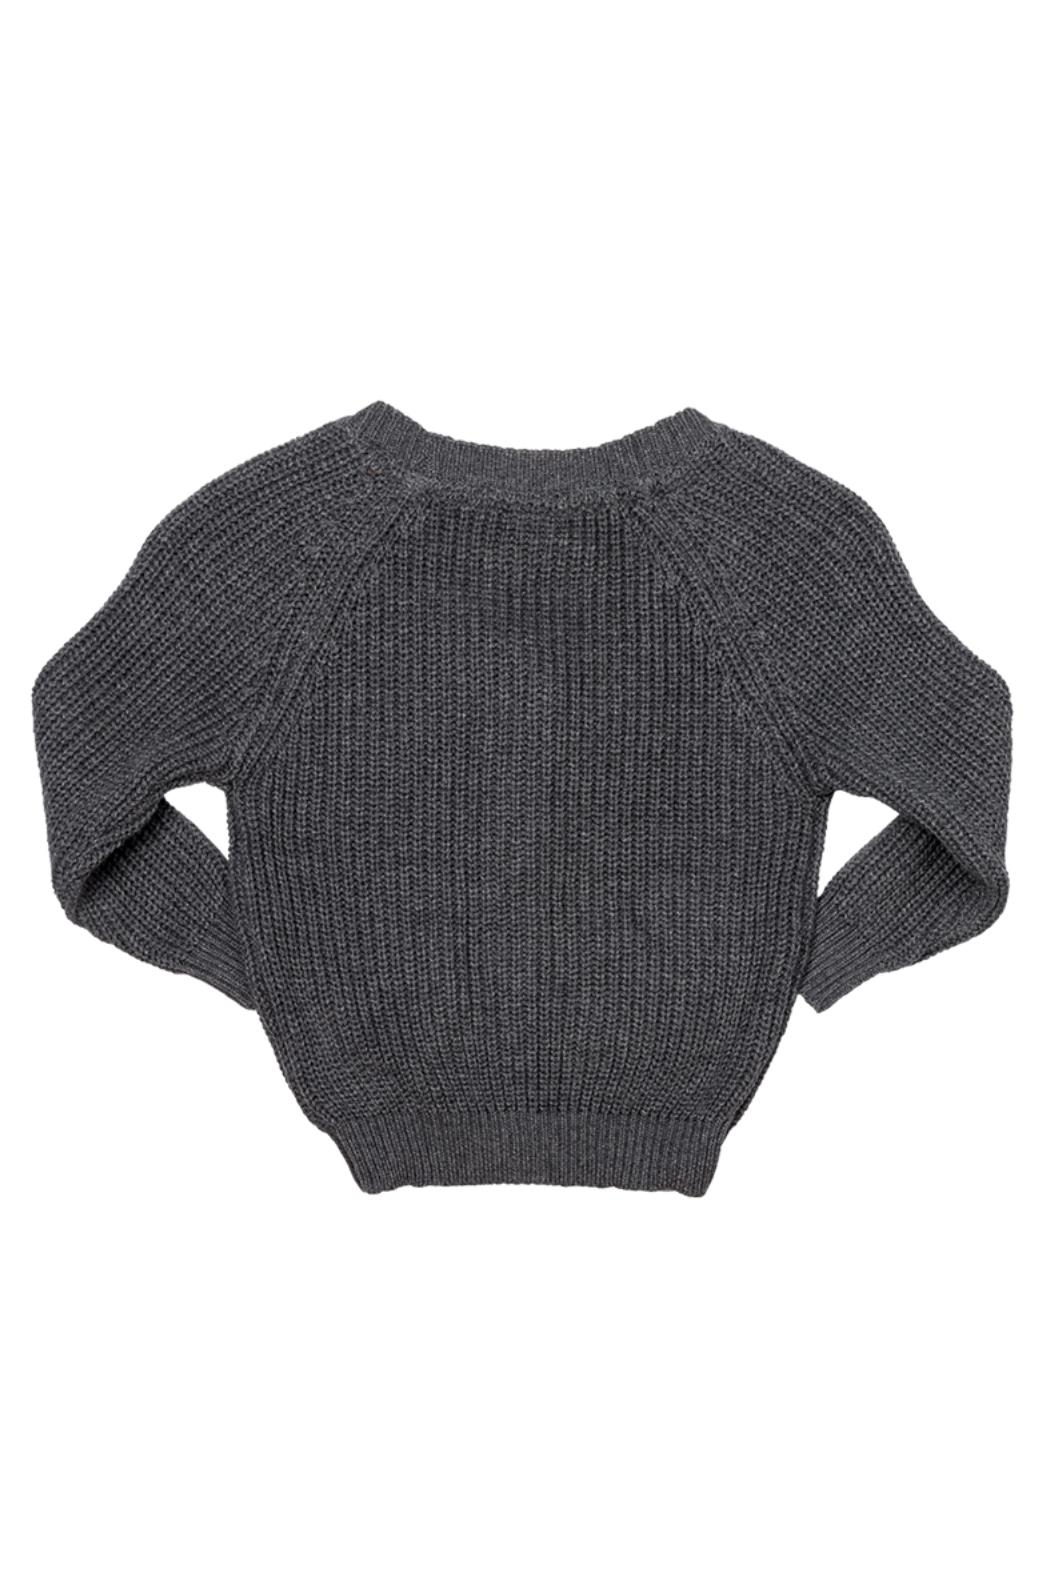 Rock Your Baby Grey Baby Cardigan - Front Full Image